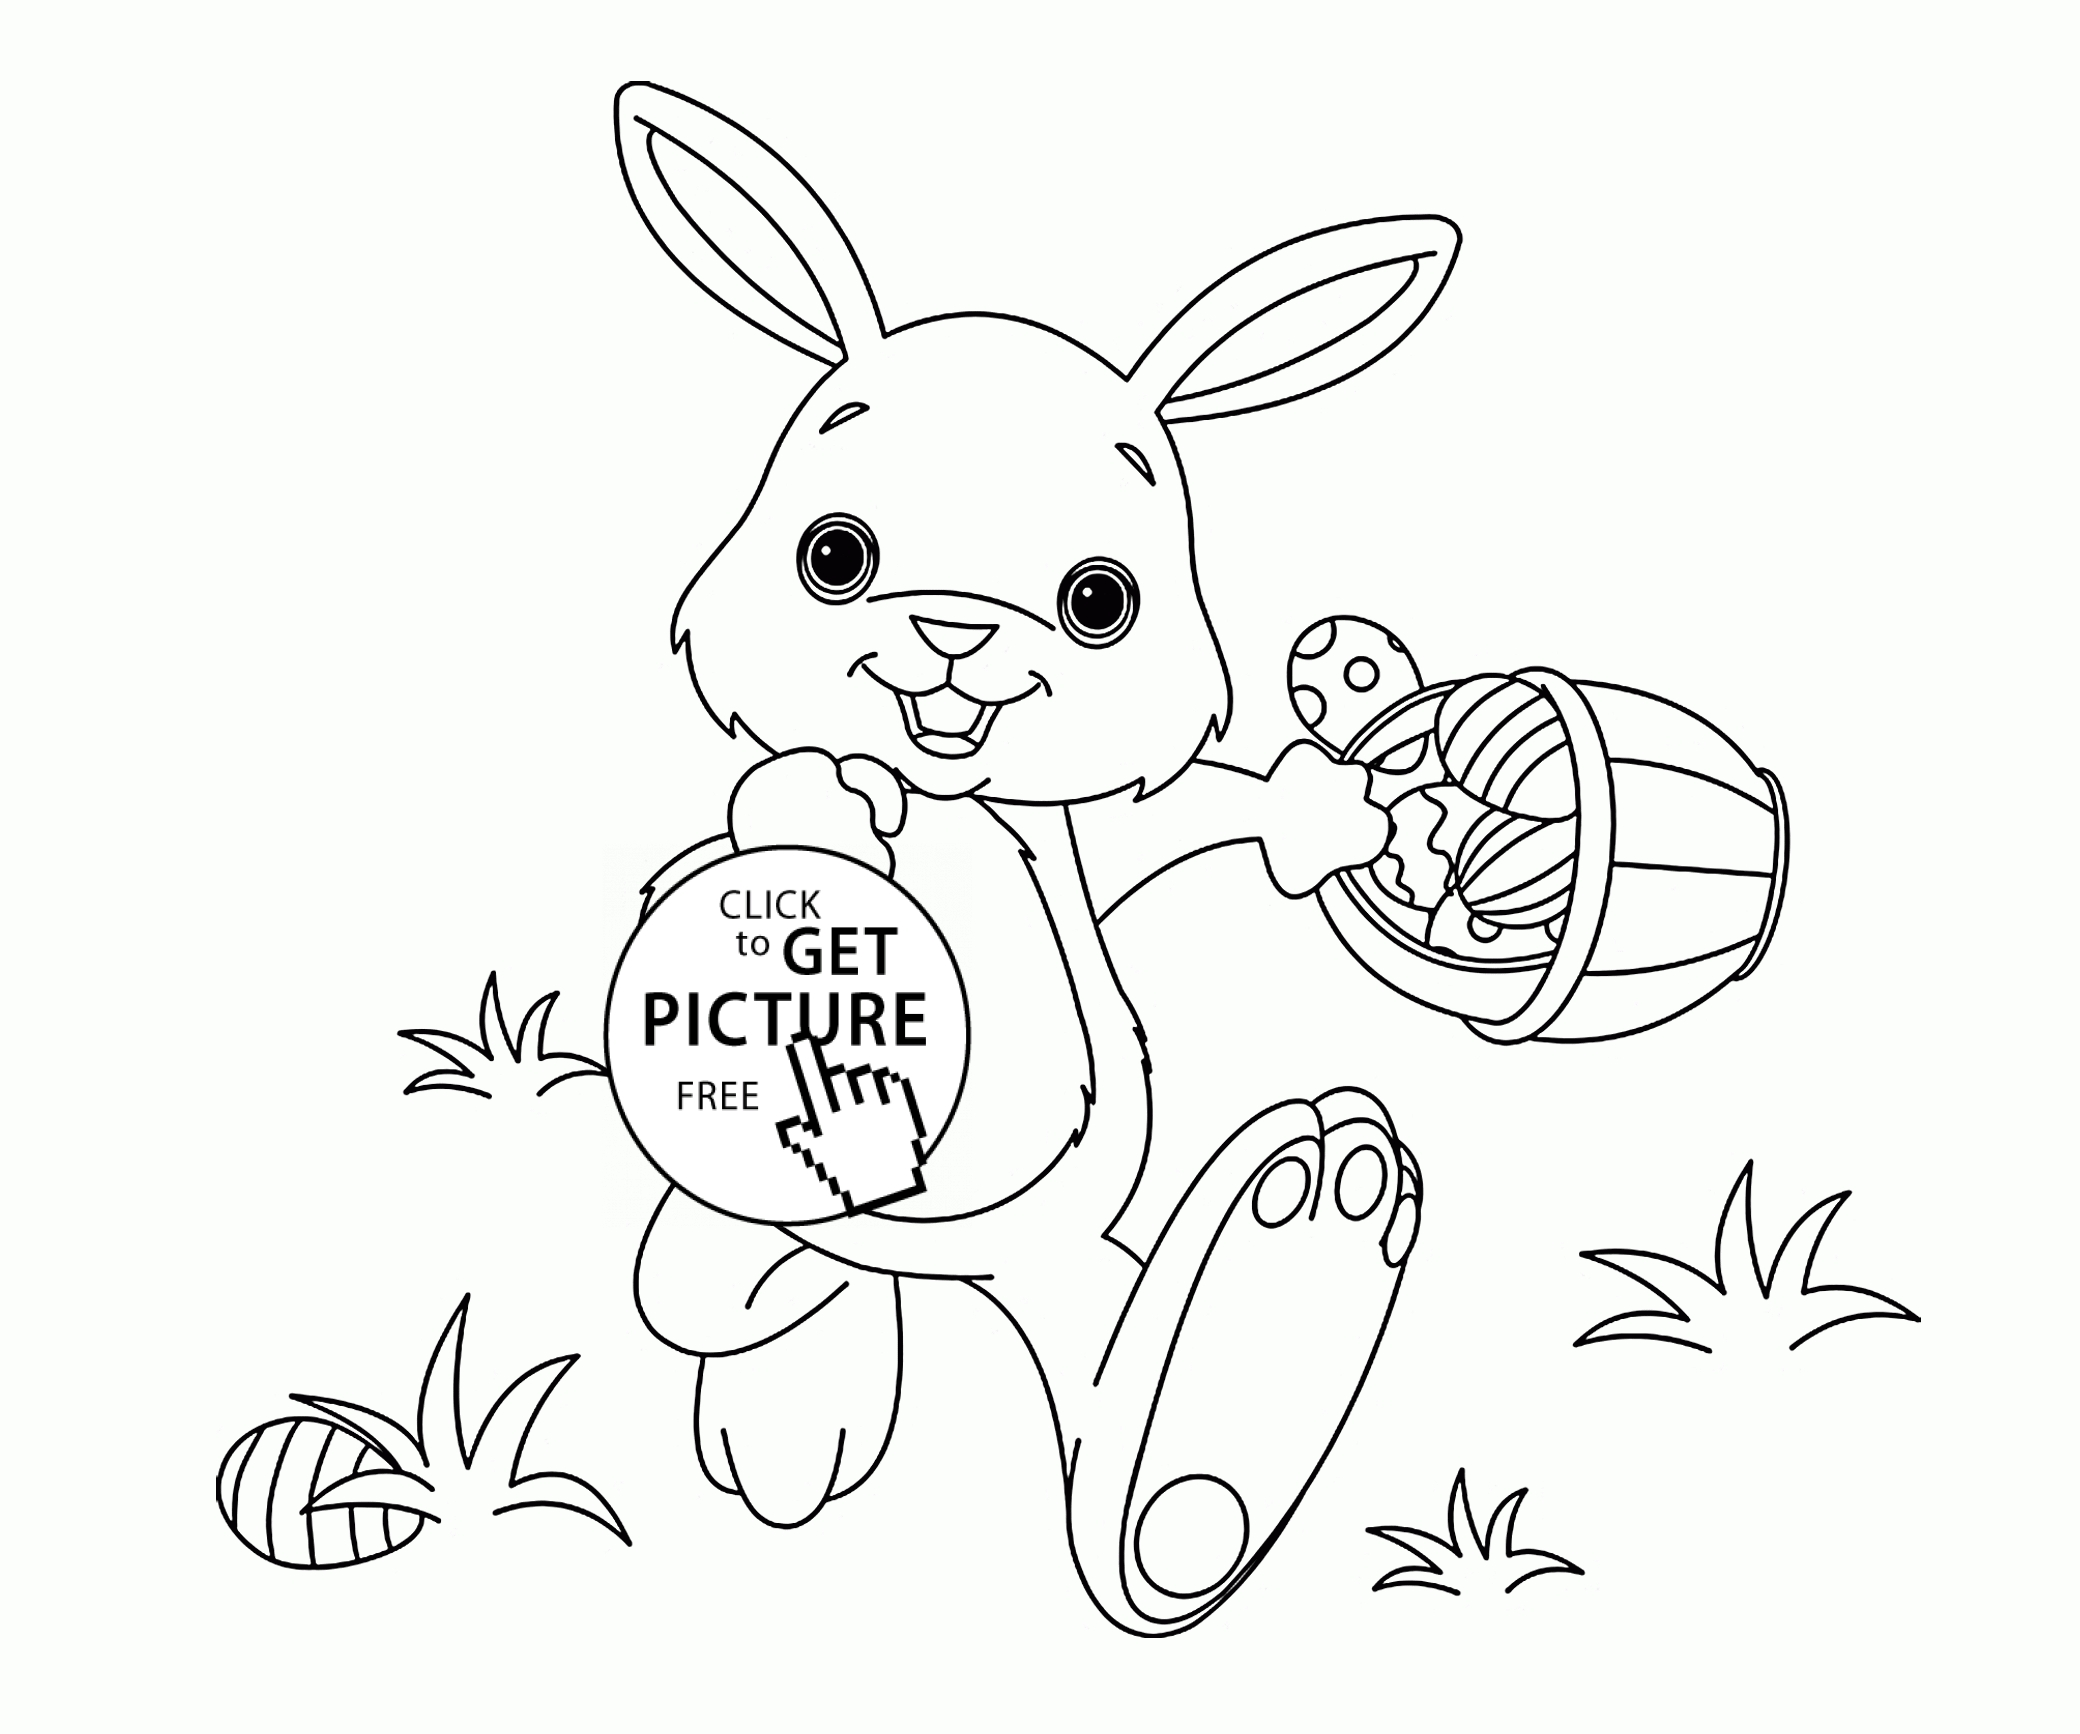 bunny coloring pages free - funny little easter bunny coloring page for kids coloring pages printables free